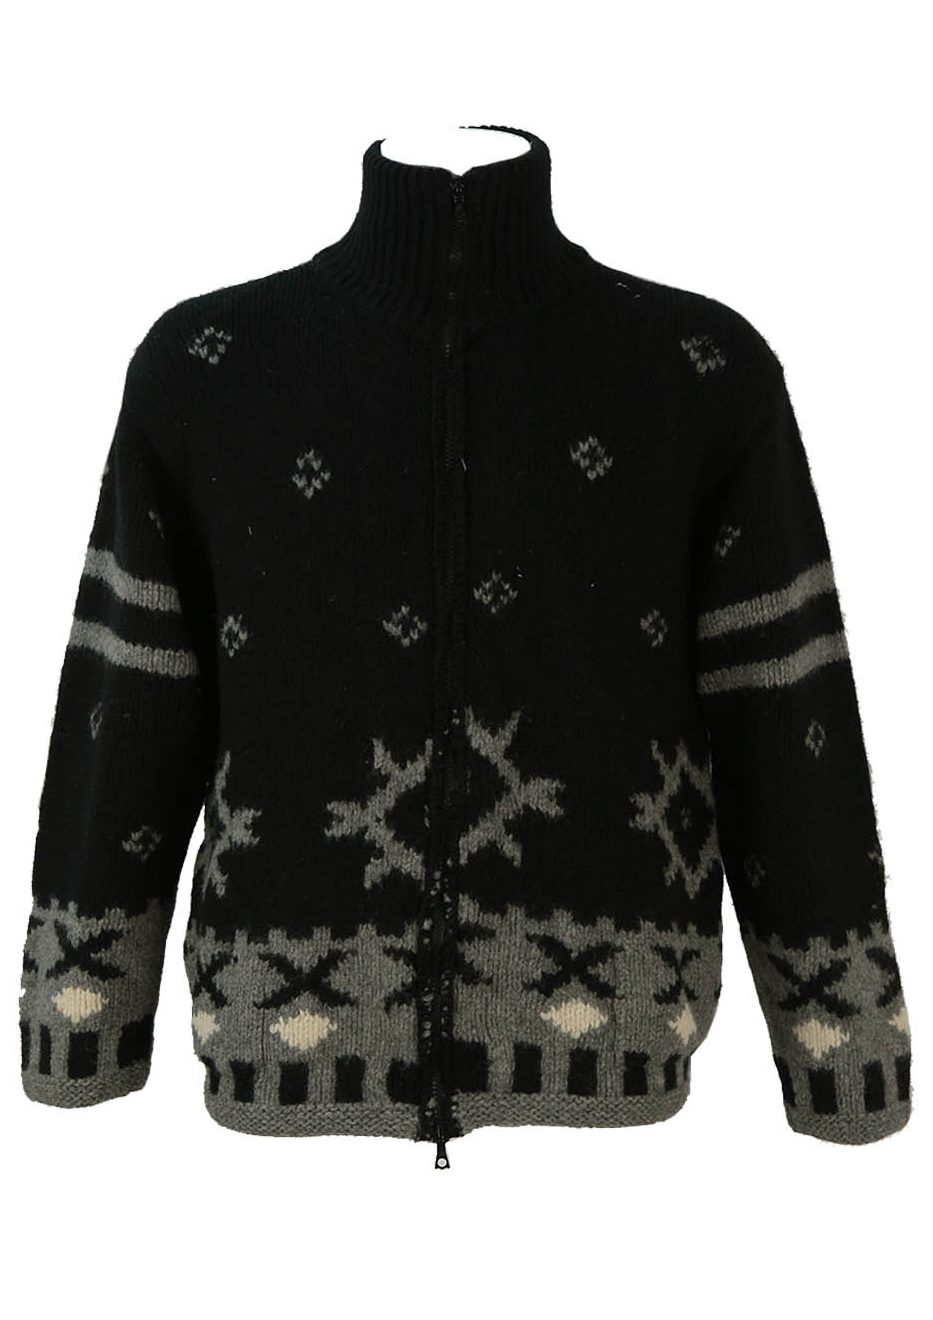 661d3509b84 Chunky Black and Grey Nordic Style Zip Front Wool Cardigan – L XL ...